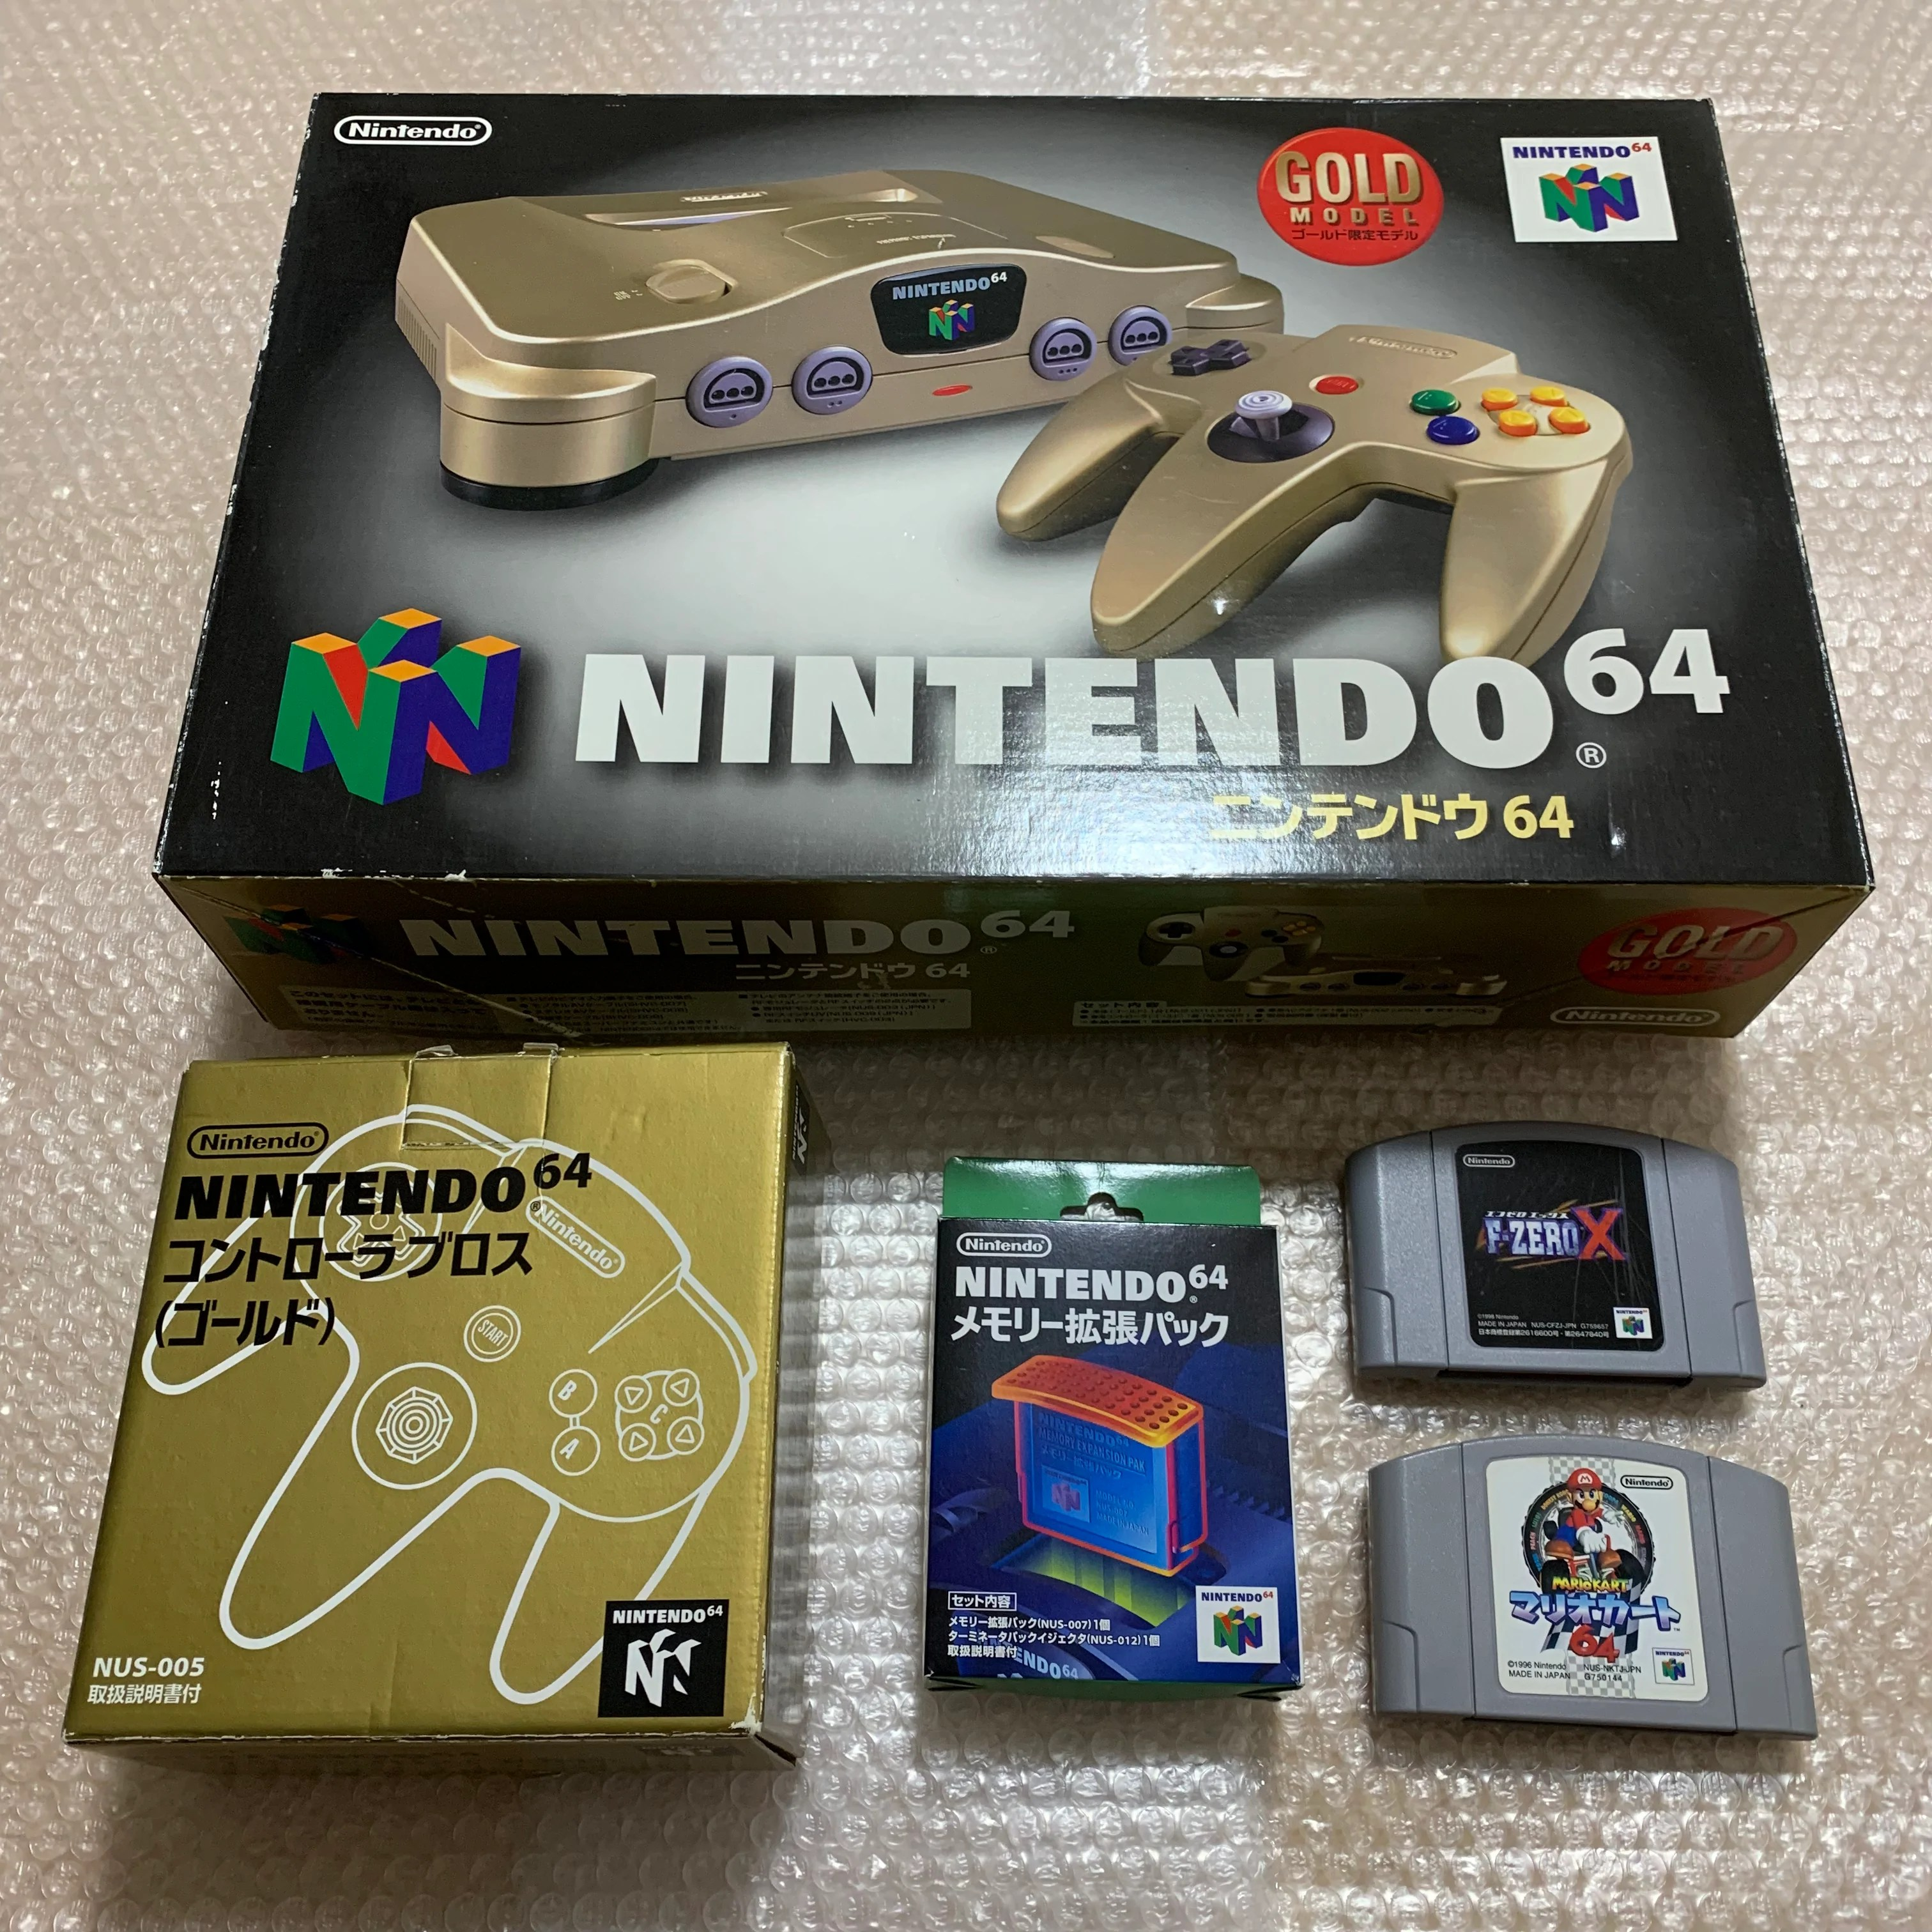 medium resolution of gold nintendo 64 in box set with ultra hdmi kit compatible with jp a retroasia